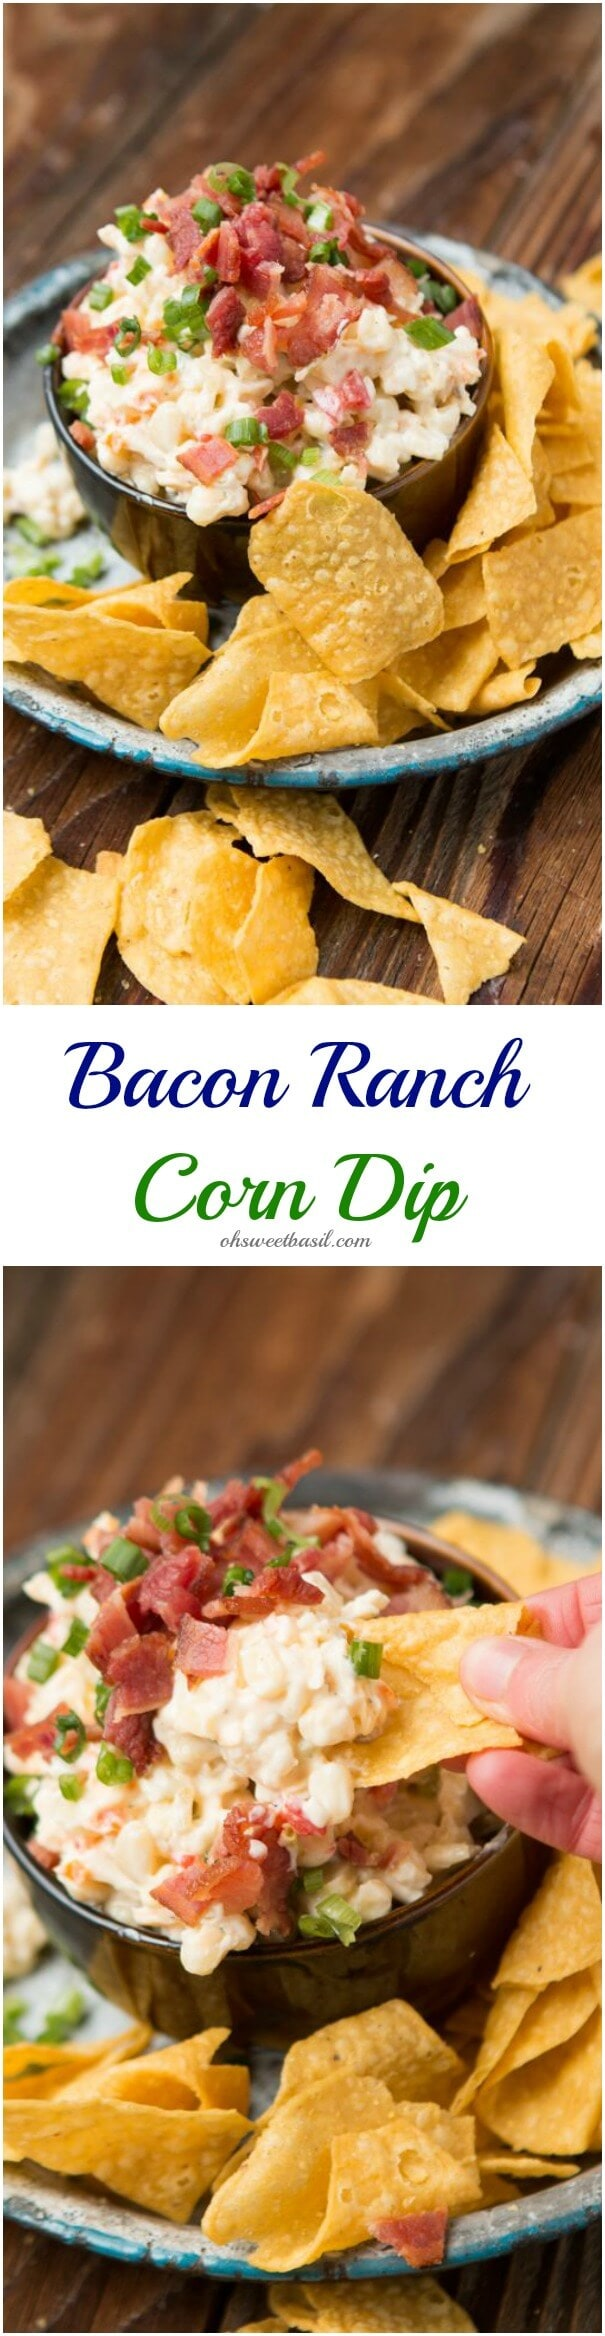 Our obsession for summer, bacon ranch corn dip of course! ohsweetbasil.com